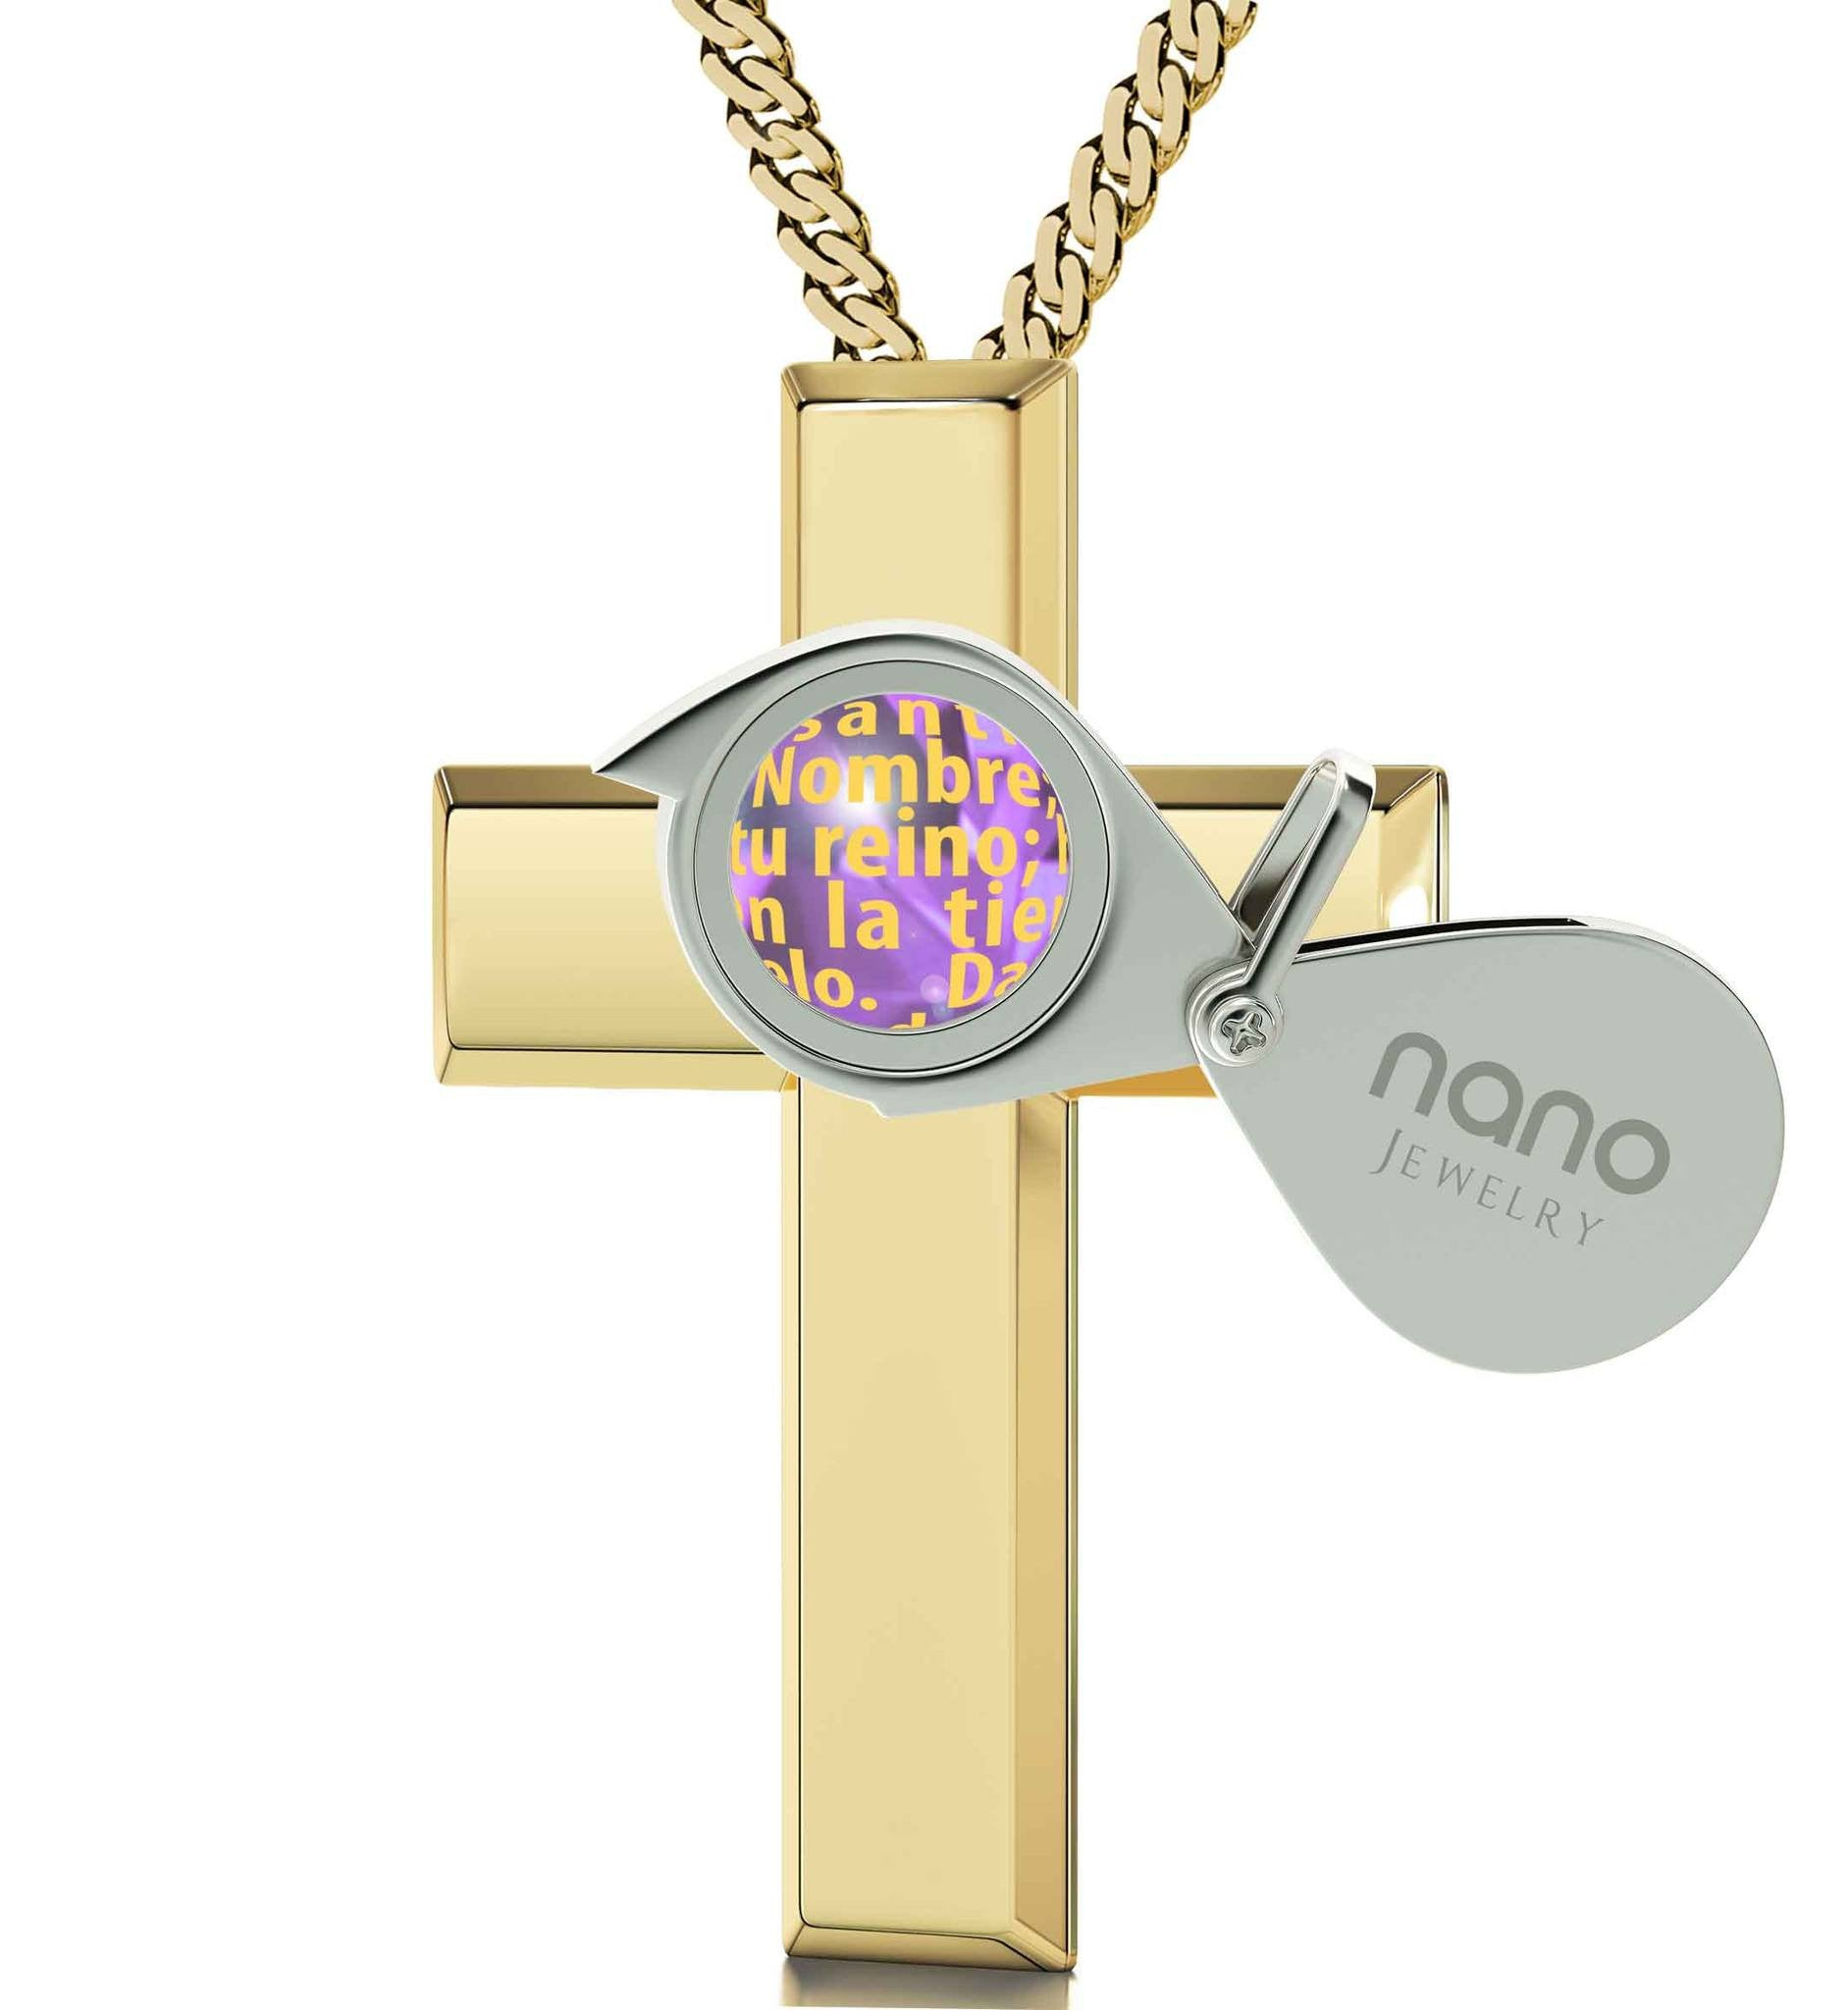 Womens cross pendant spanish lords prayer order now at nano jewelry lords prayer gold cross necklace christmas present ideas for best friend special gifts aloadofball Image collections